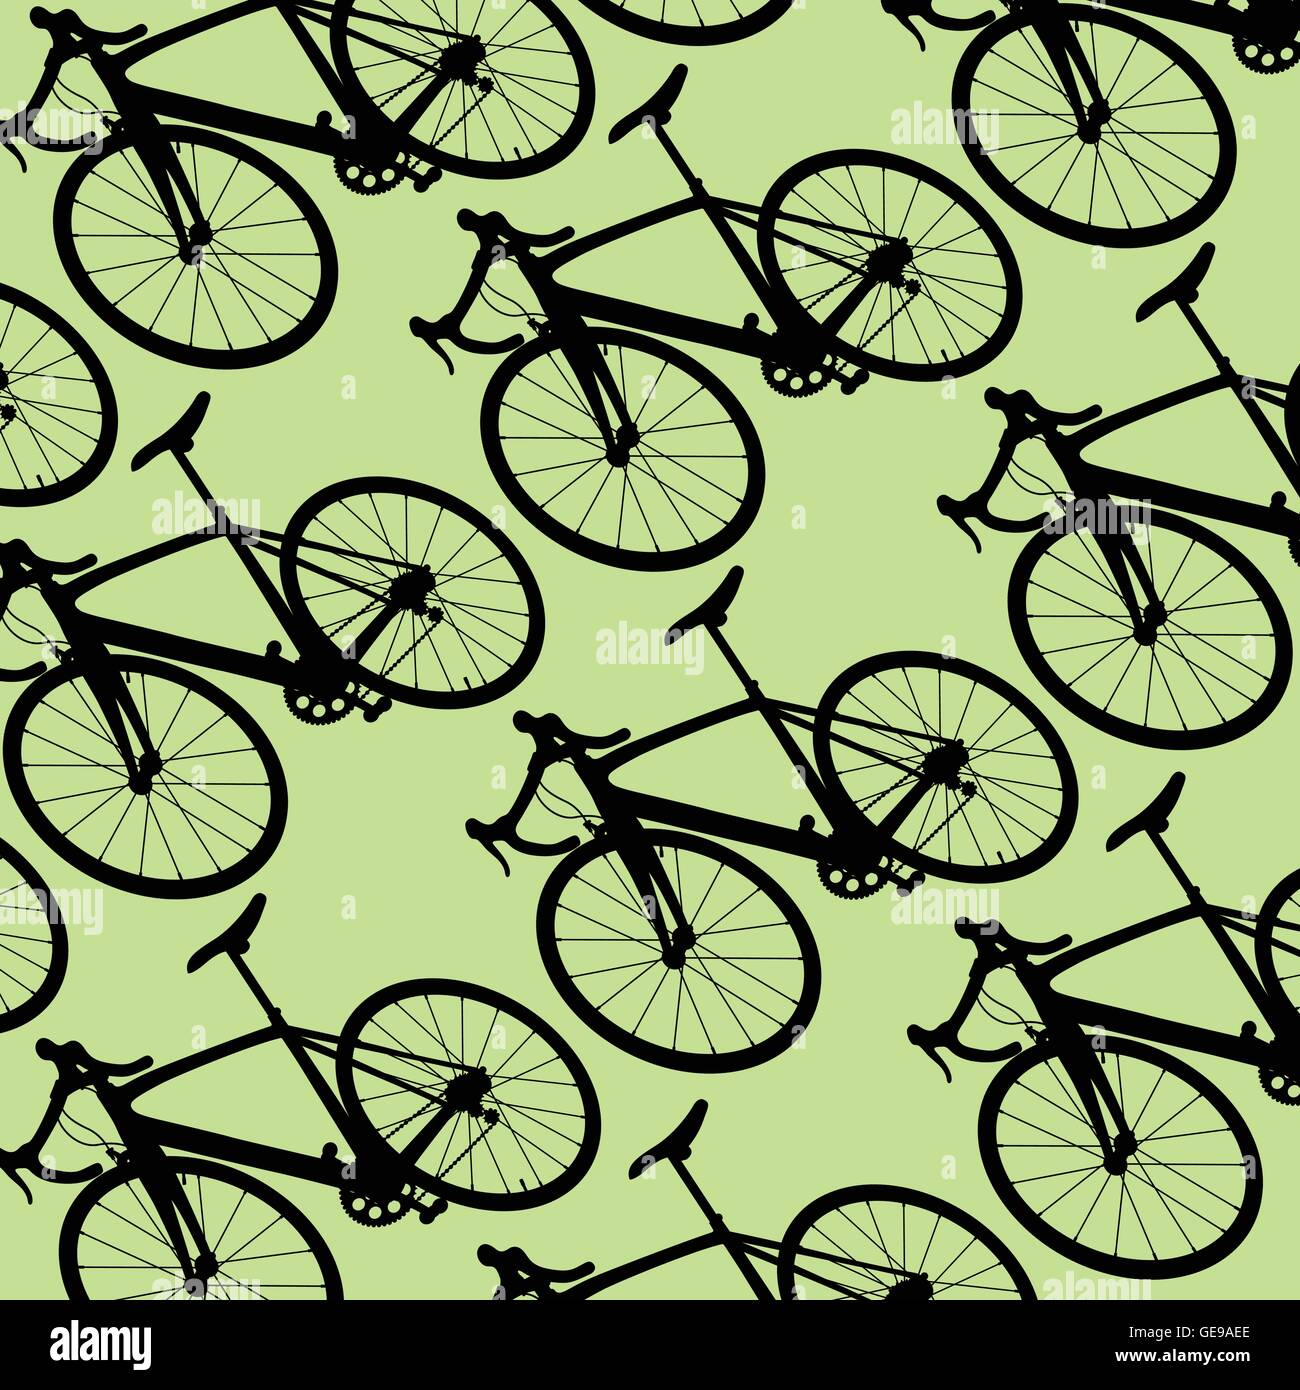 Bicycle Pattern Wallpaper Vintage Retro Vector Background Concept For Stock Vector Image Art Alamy